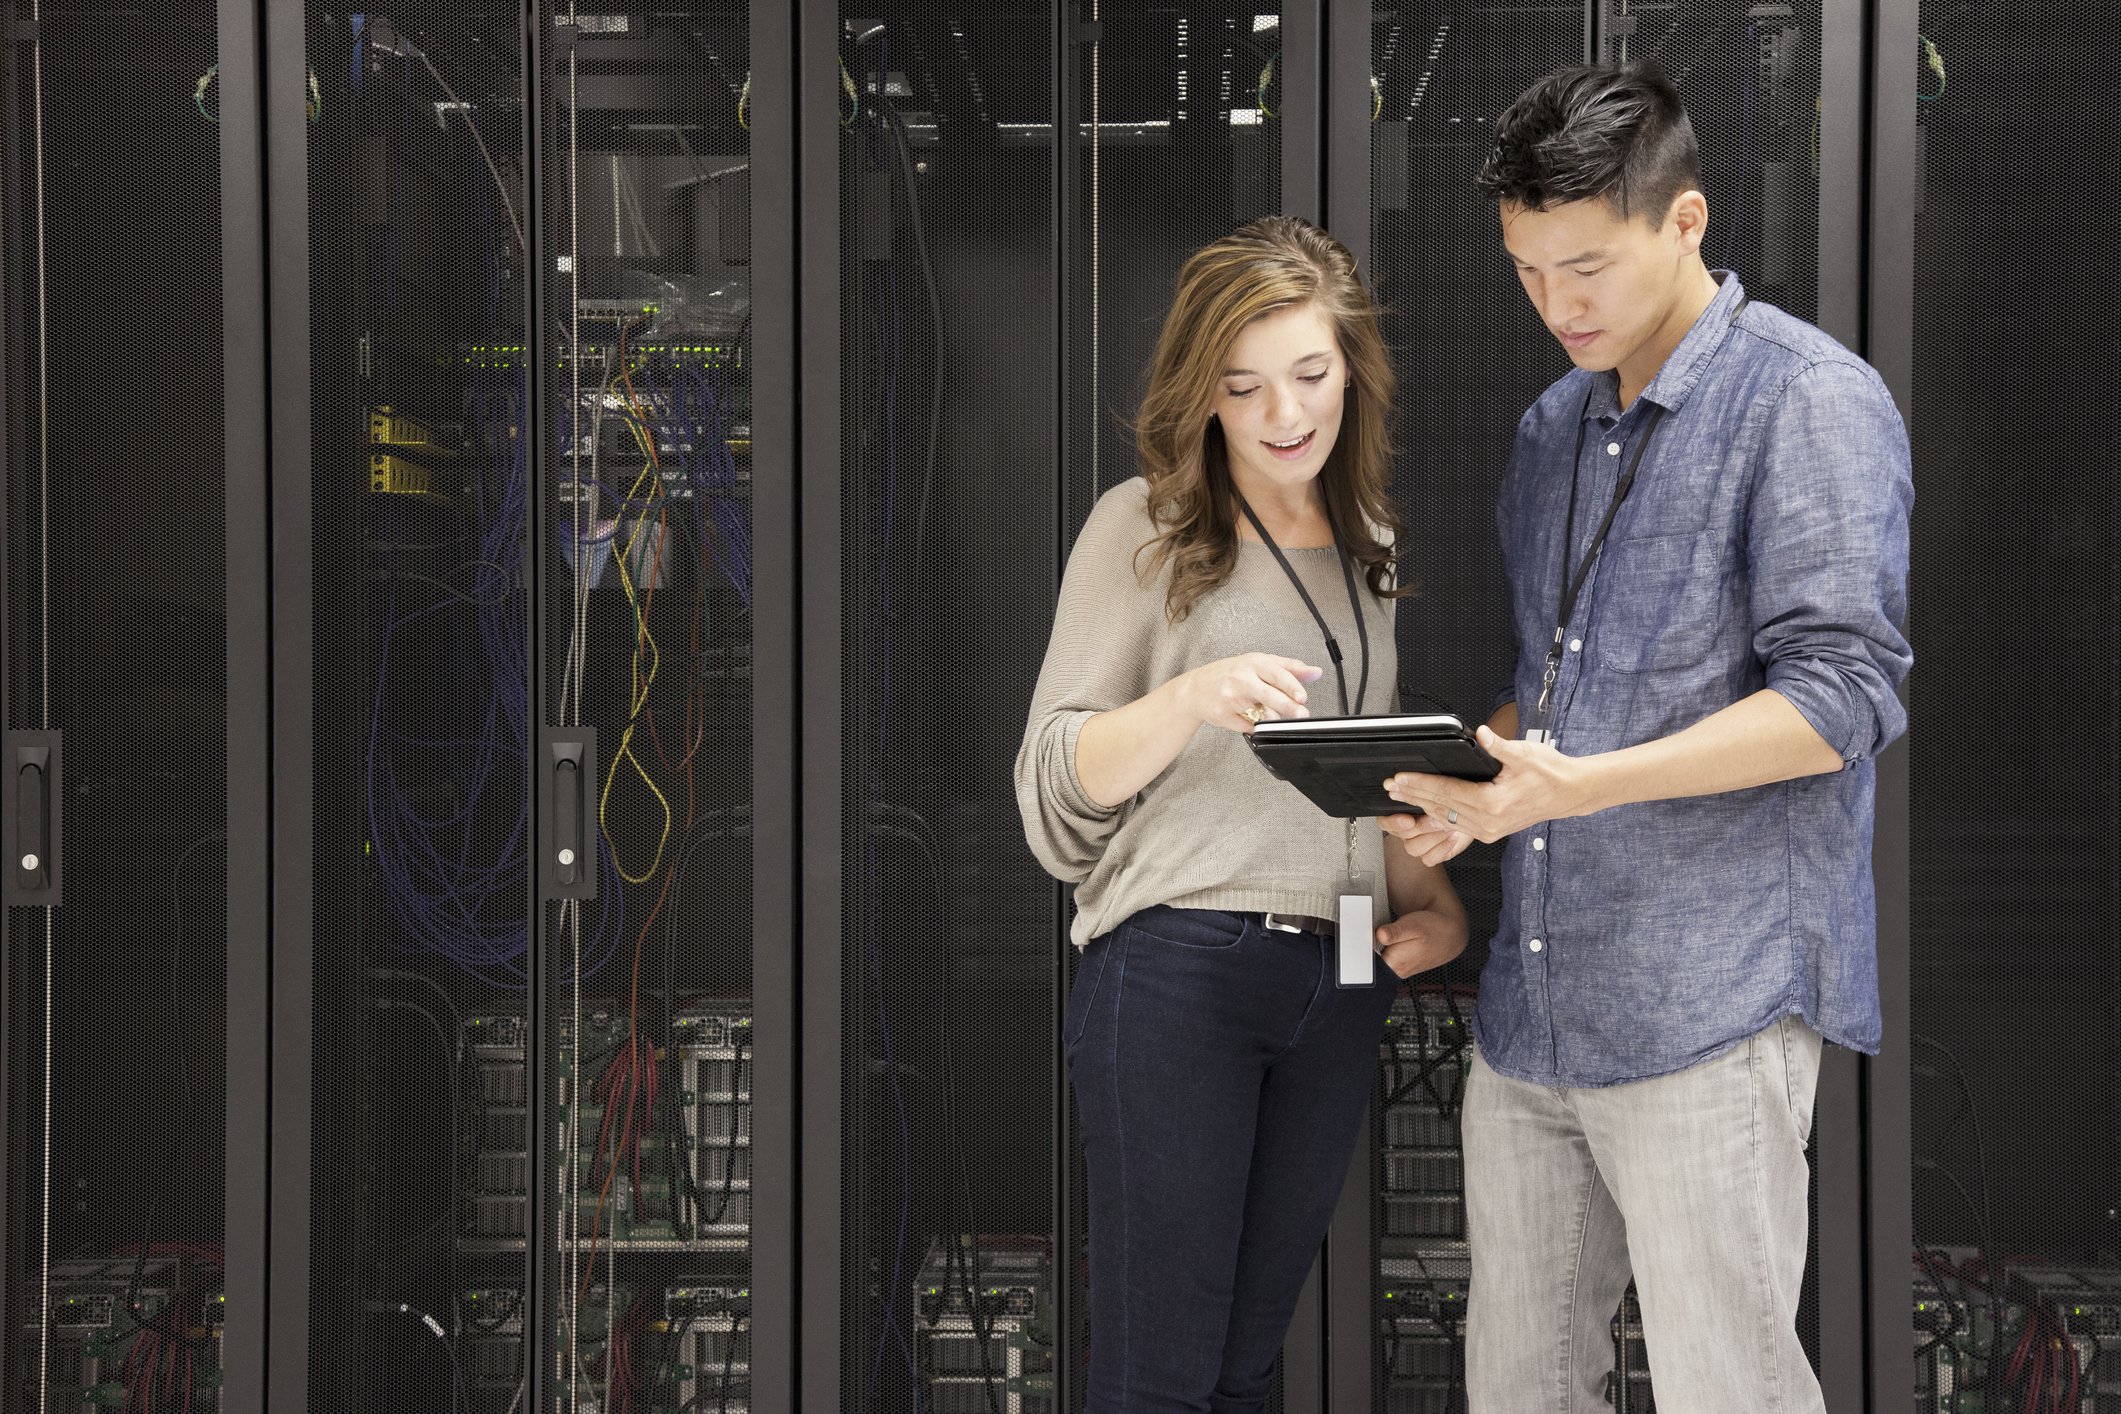 Organizations Can't Keep Up with Security Hygiene and Posture Management